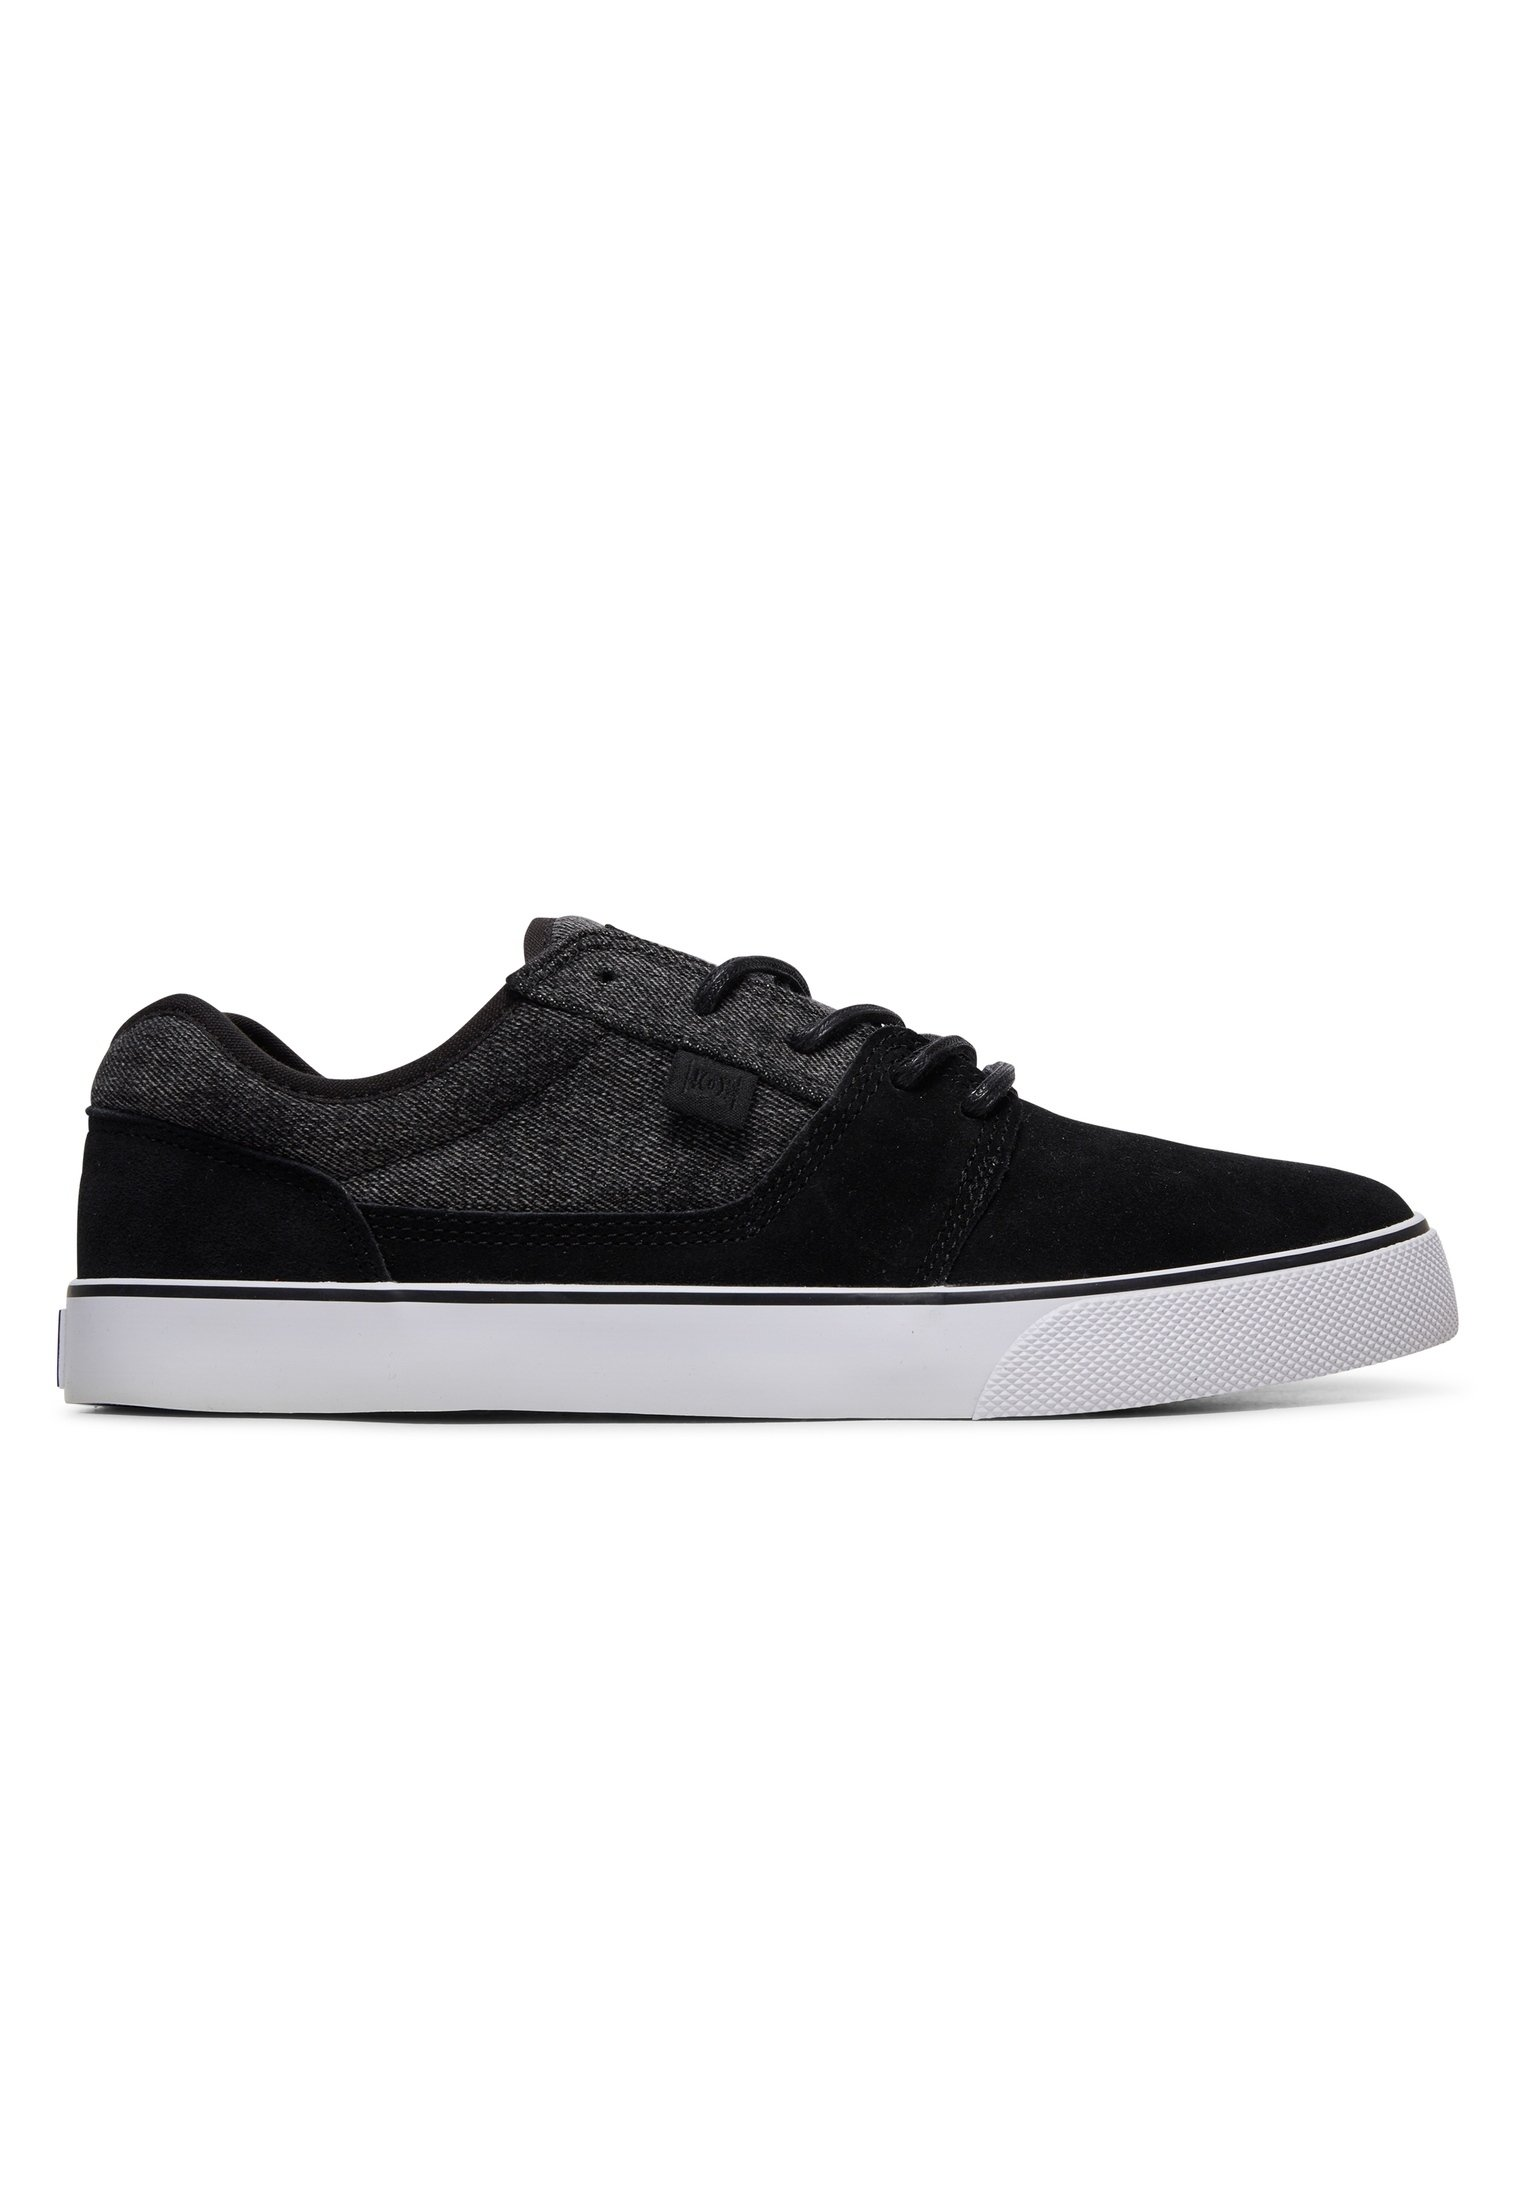 DC Shoes DC SHOES™ TONIK SE - SCHUHE FÜR MÄNNER 303064 - Sneaker low - black denim